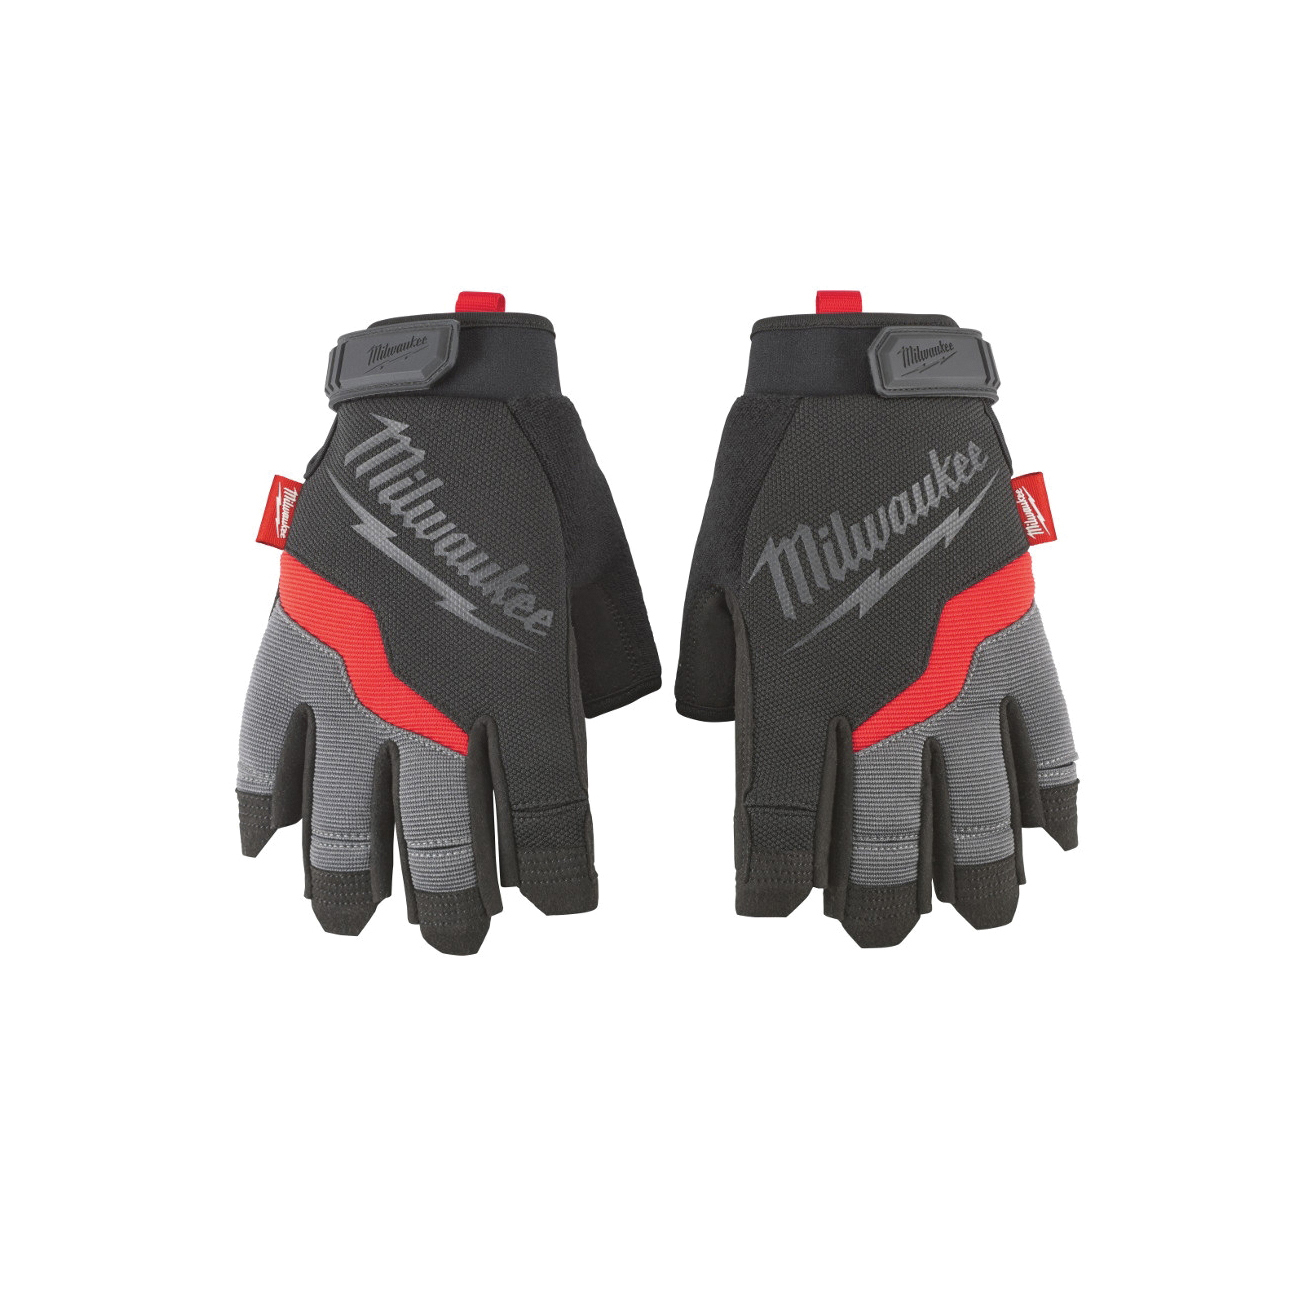 Milwaukee® 48-22-8743 Demolition Fingerless General Purpose Work Gloves, XL, Black/Red, High Dexterity Finger Tip, Synthetic Leather